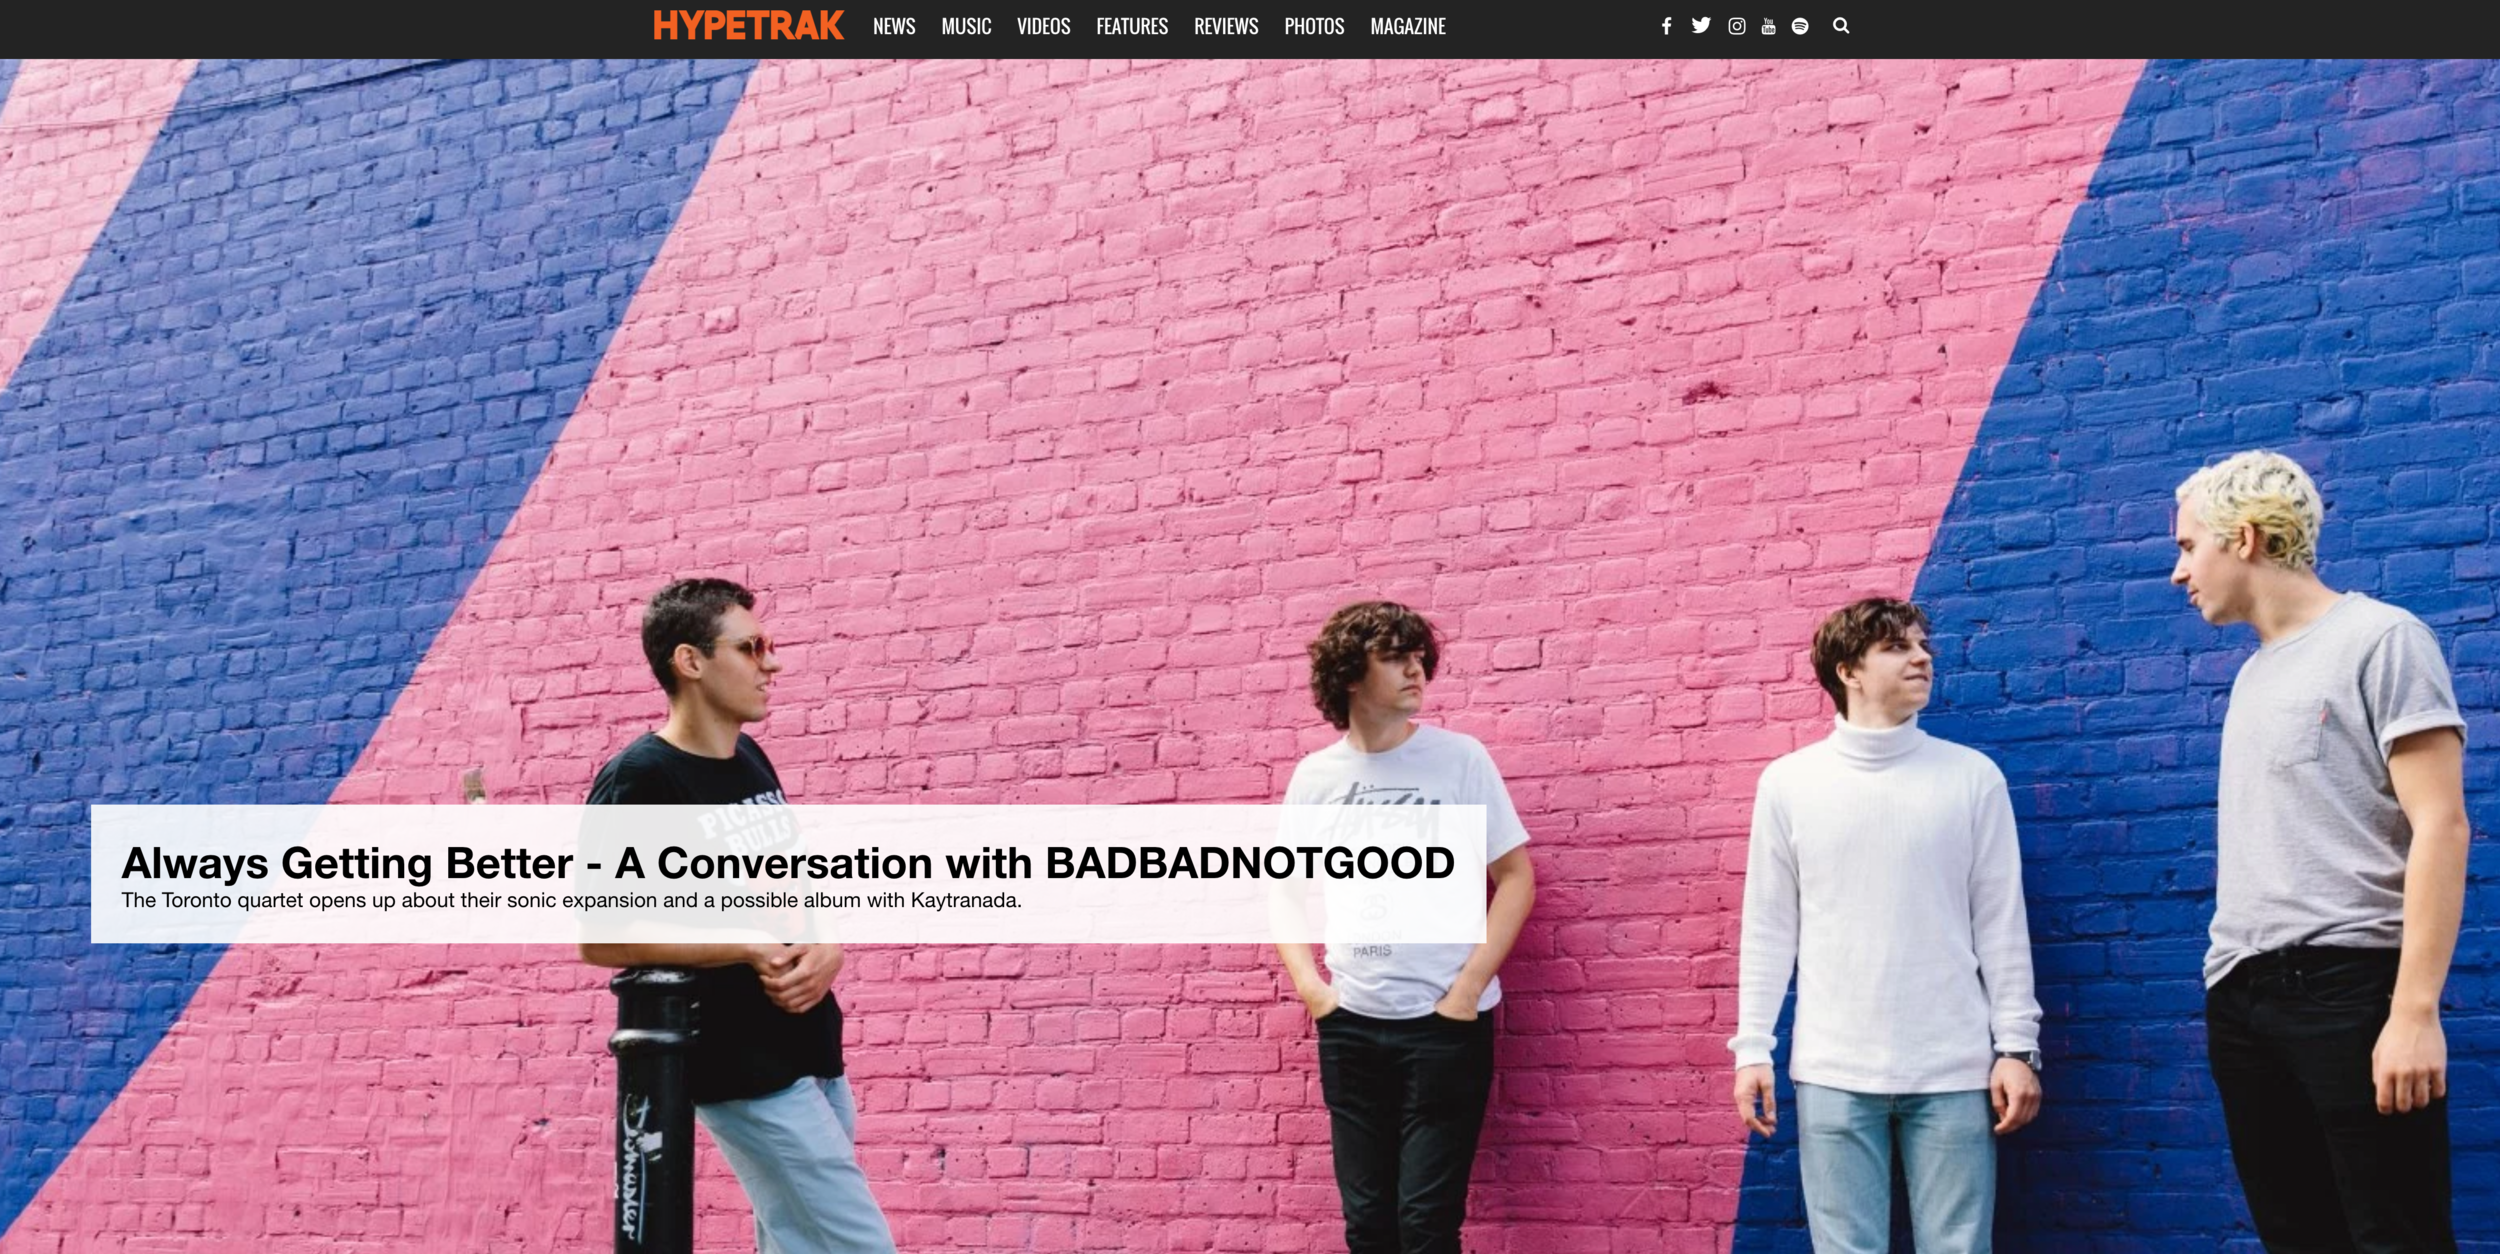 HYPEBEAST  - A Conversation with BADBADNOTGOOD